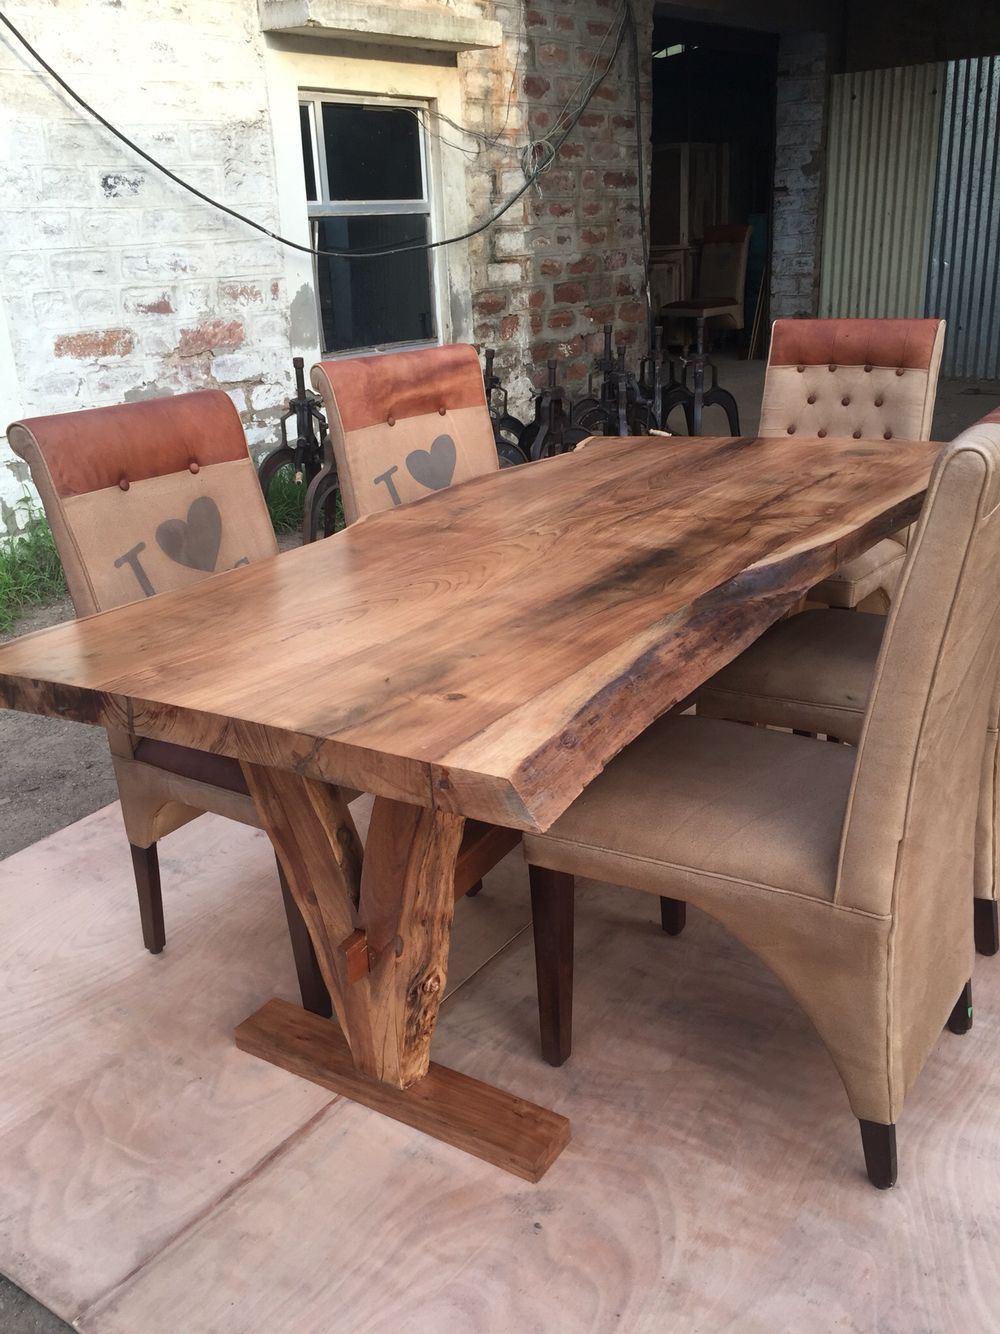 Yosemite live edge table acacia solid wood solid wood live edge dining tables pinterest - Kitchen table bases ...